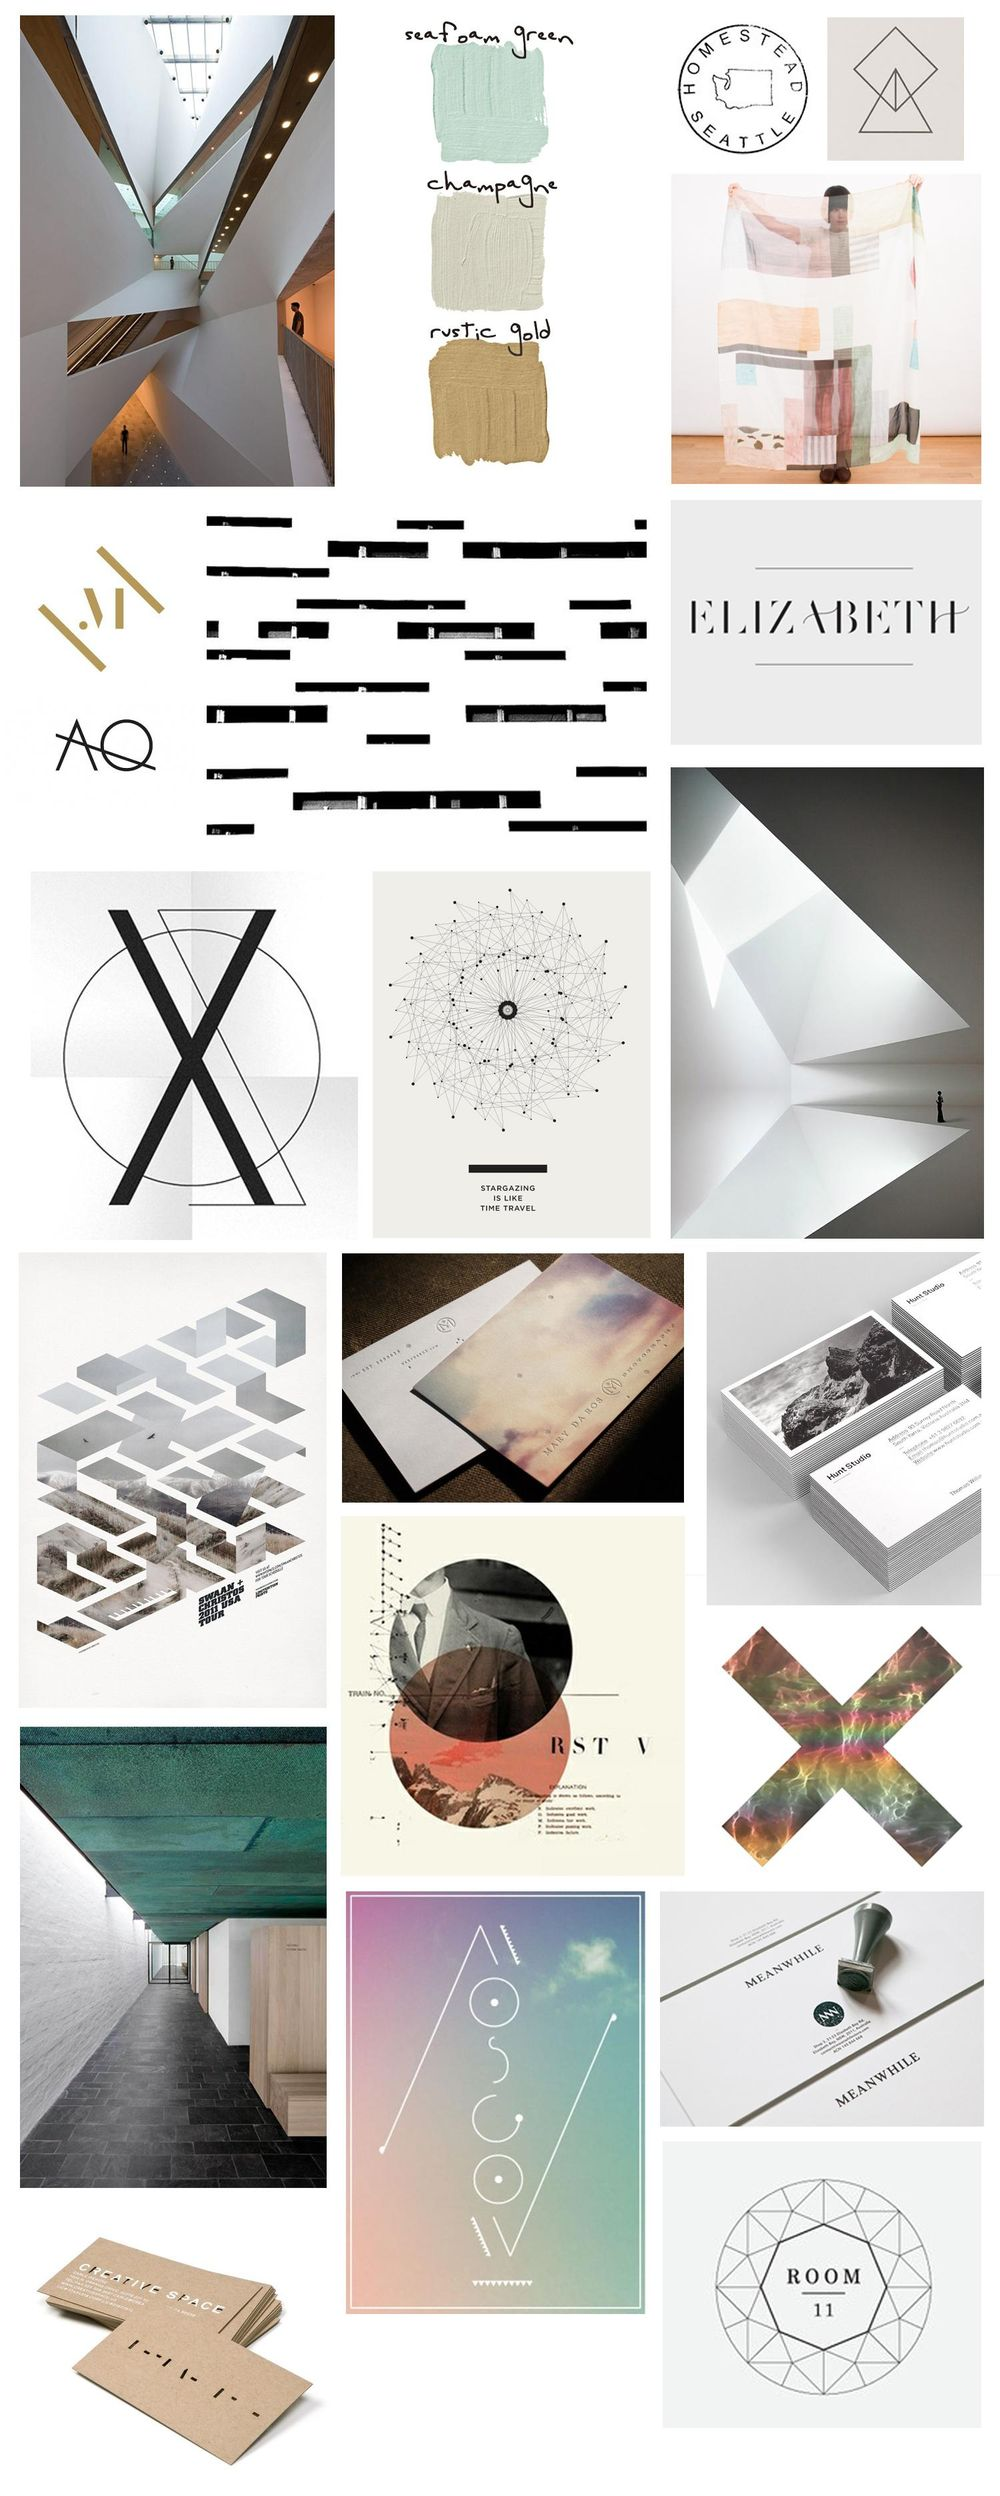 x // logo for personal brand - image 1 - student project